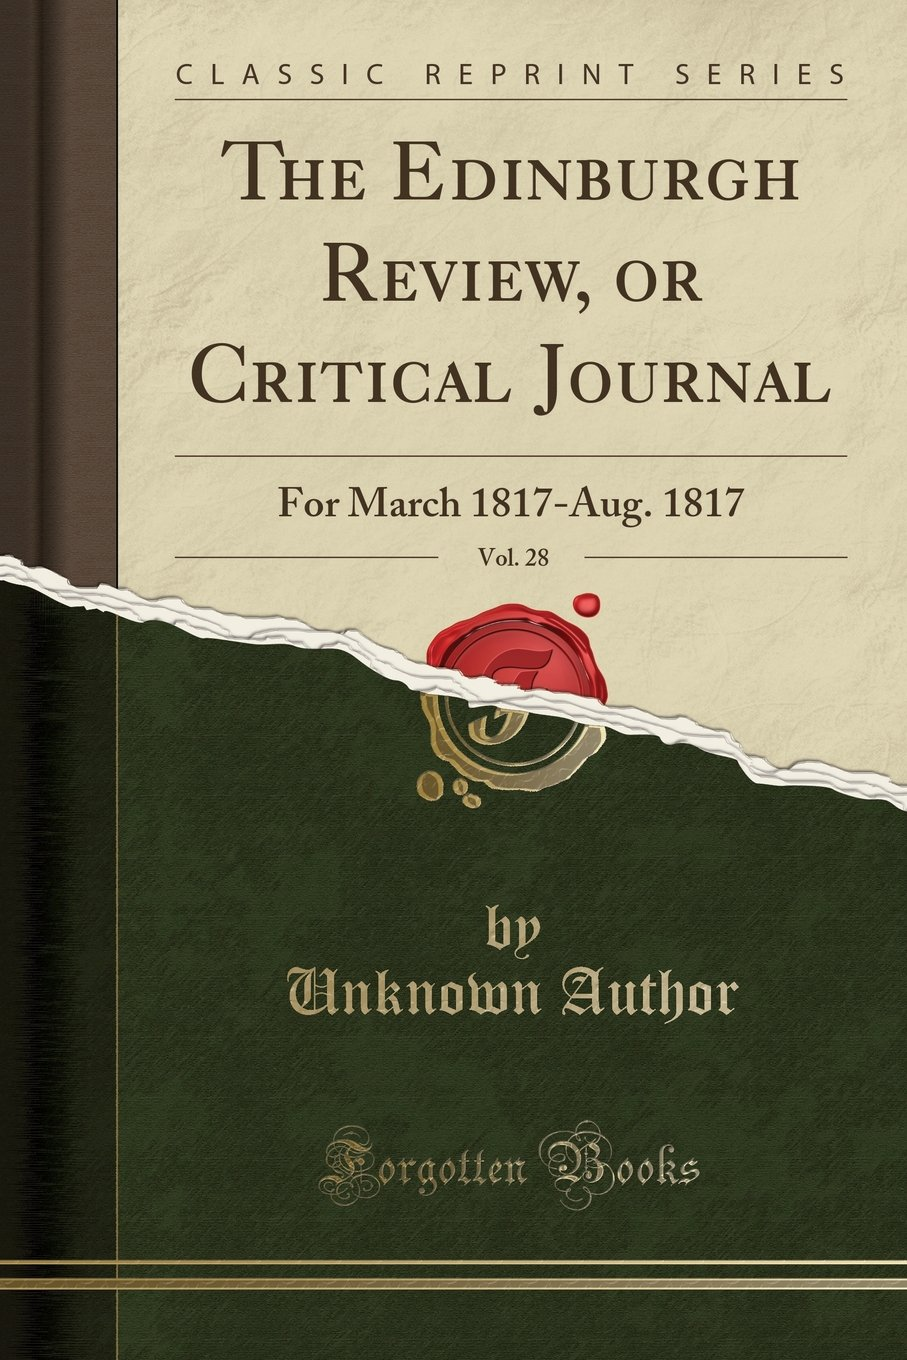 Download The Edinburgh Review, or Critical Journal, Vol. 28: For March 1817-Aug. 1817 (Classic Reprint) pdf epub